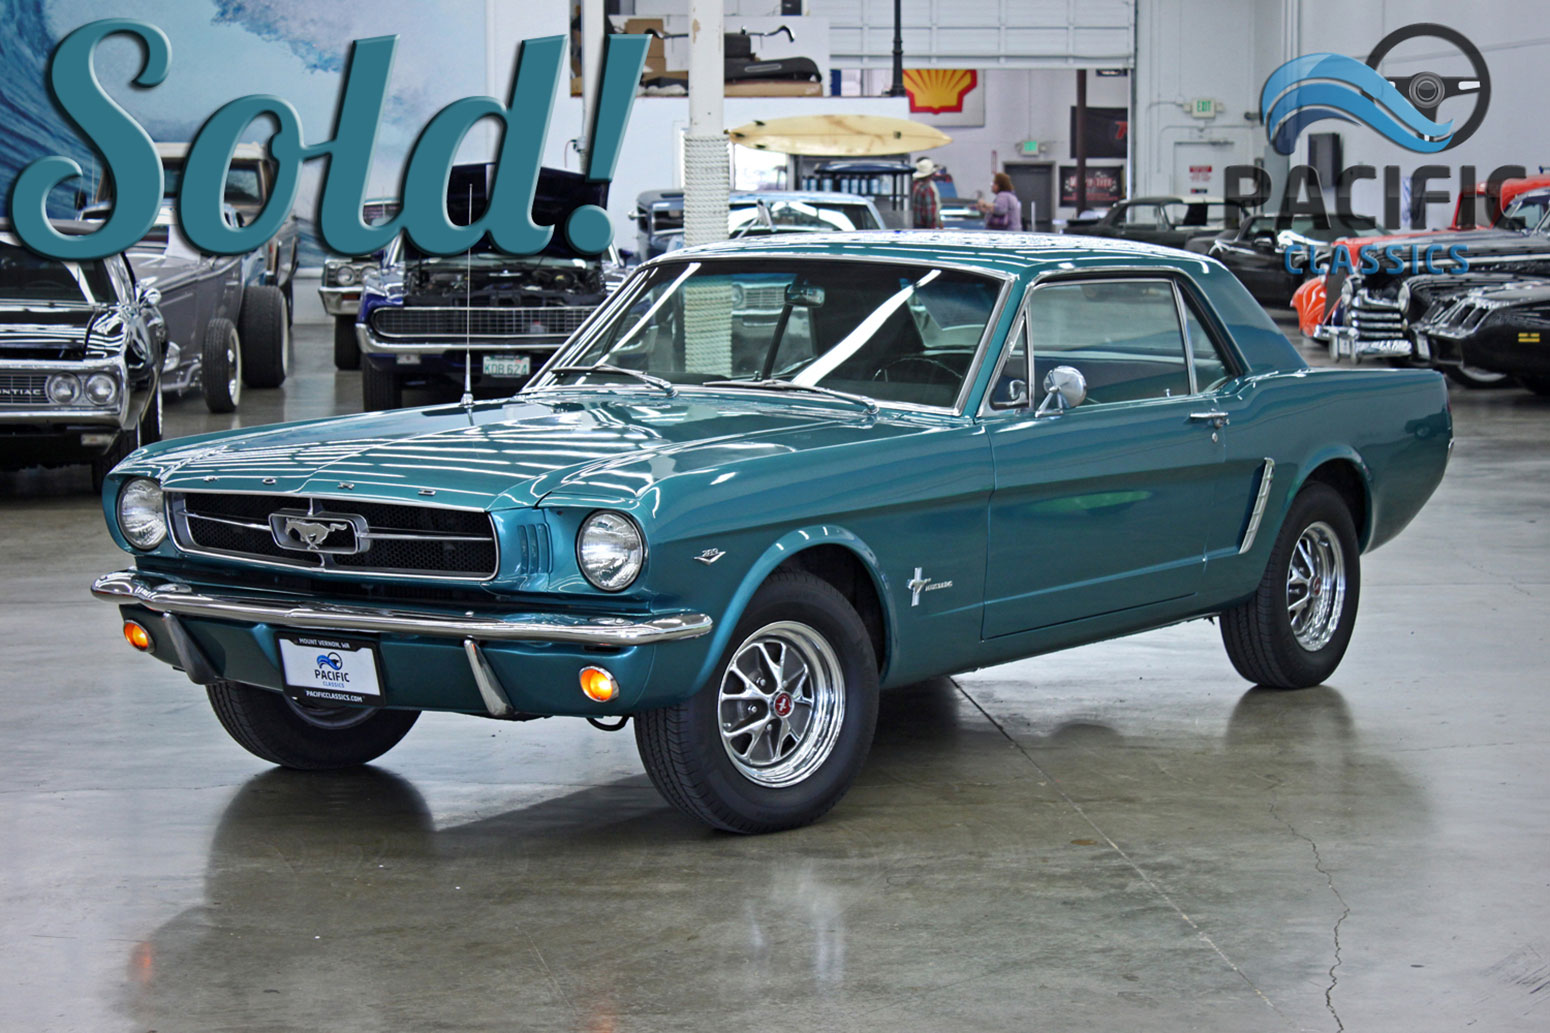 1965 Mustang Turquoise